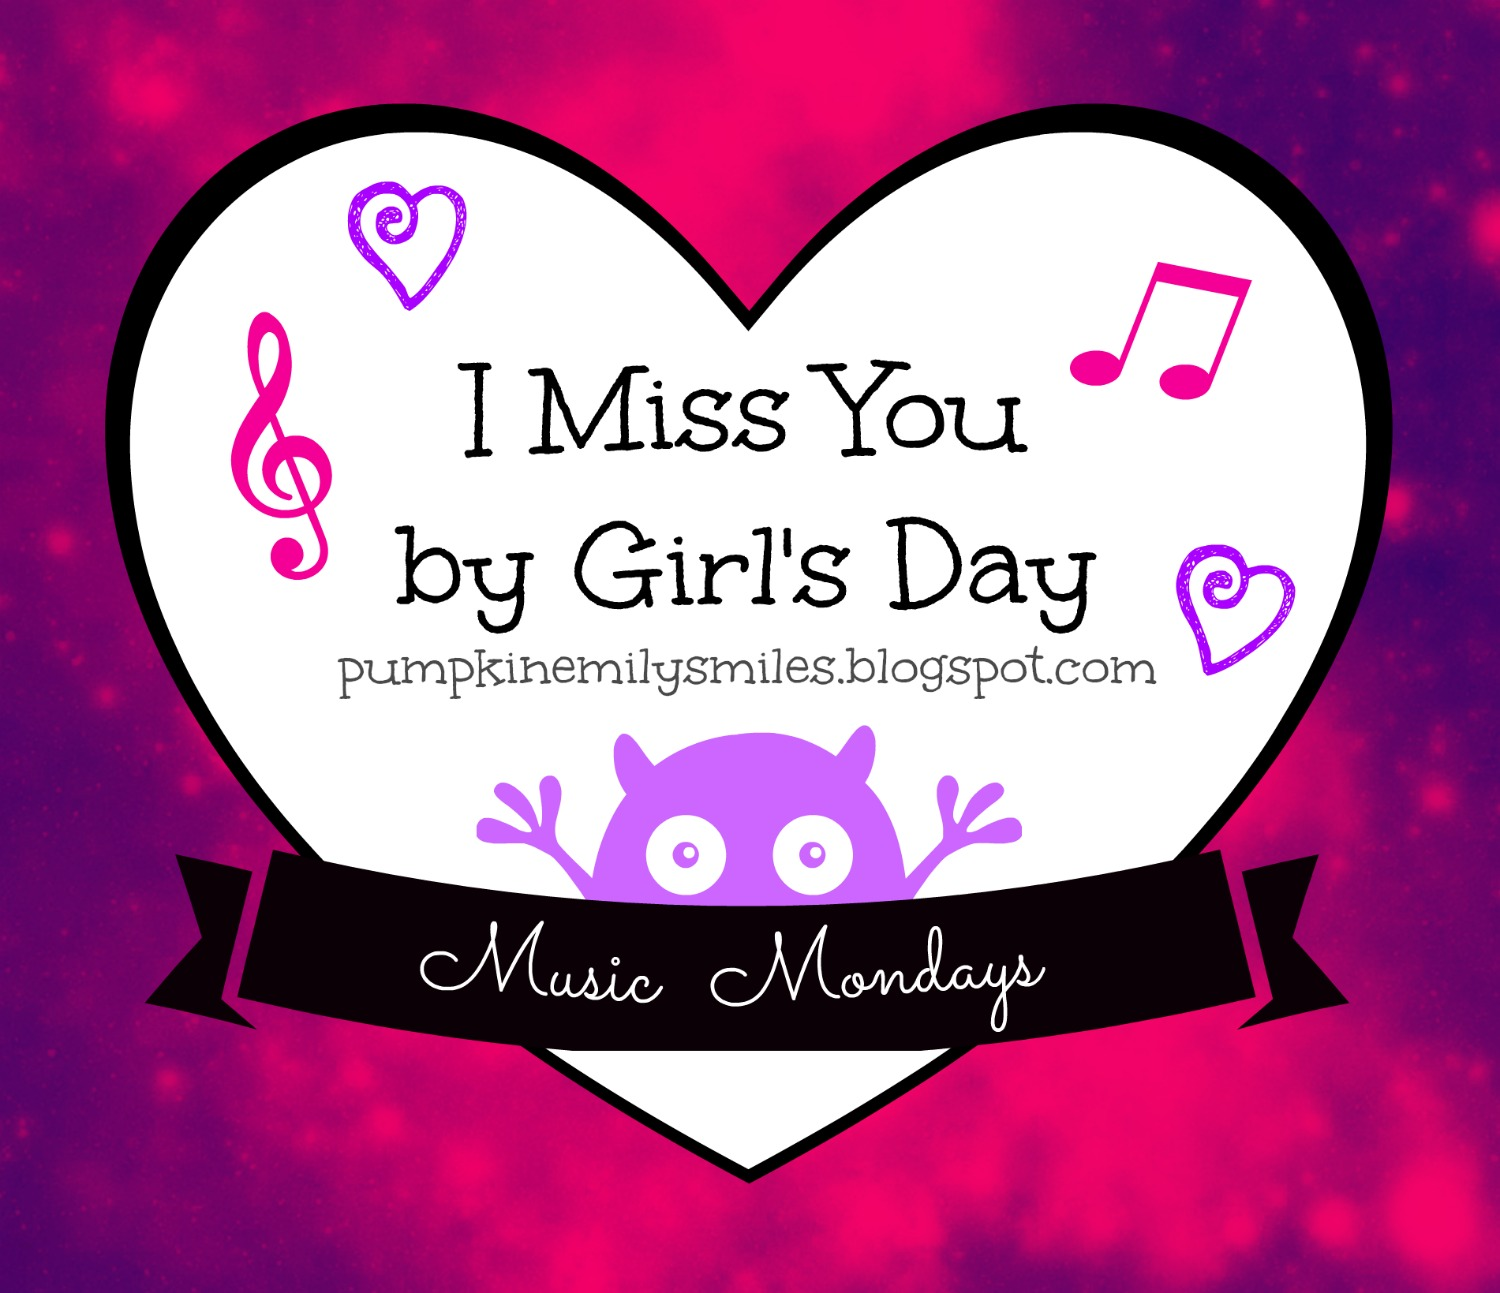 I Miss You by Girl's Day Music Mondays